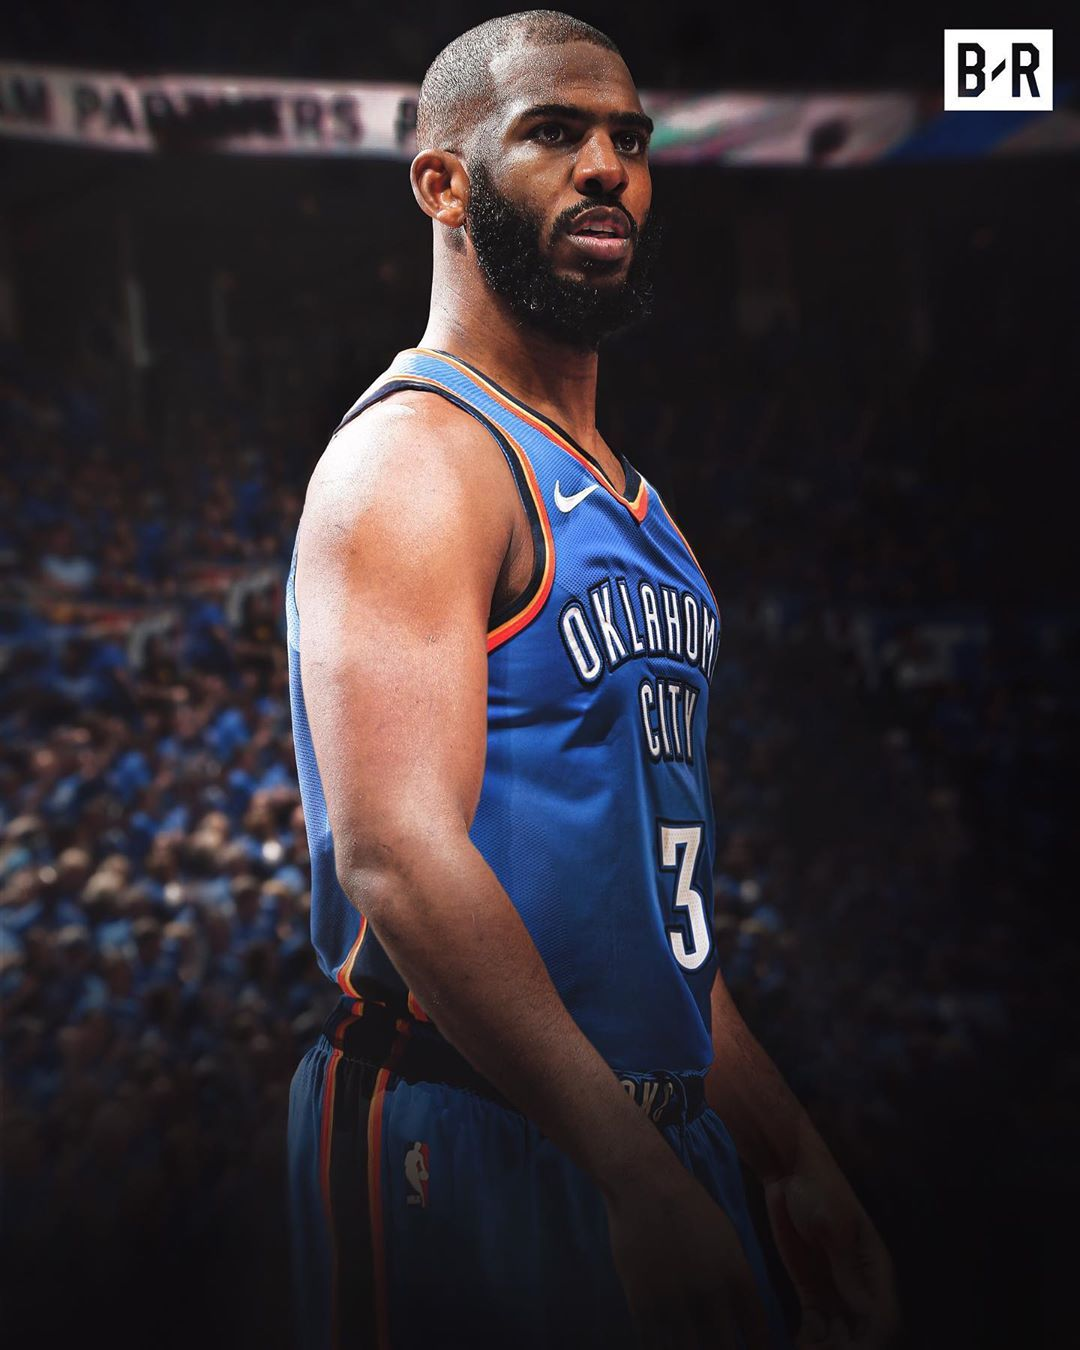 Chris Paul Htc One M8 Best Htc One Wallpapers Chris Paul Best Nba Players Lebron James Wallpapers